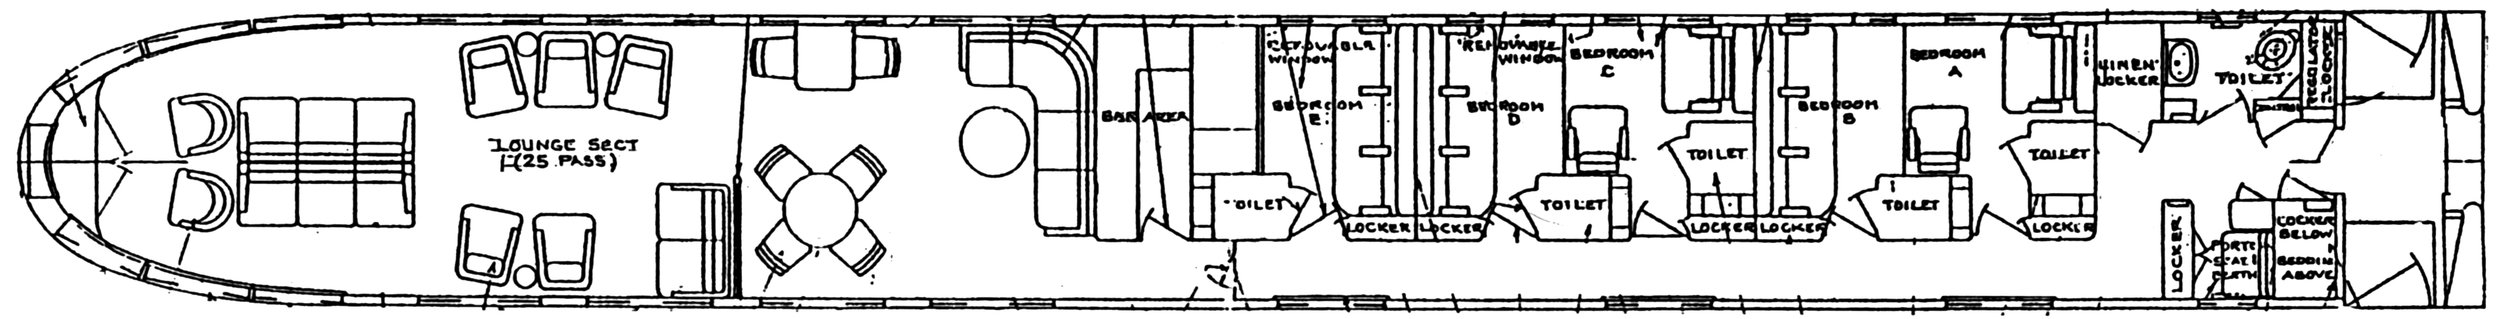 The  Babbling Brook' s original 1949 interior floorplan.